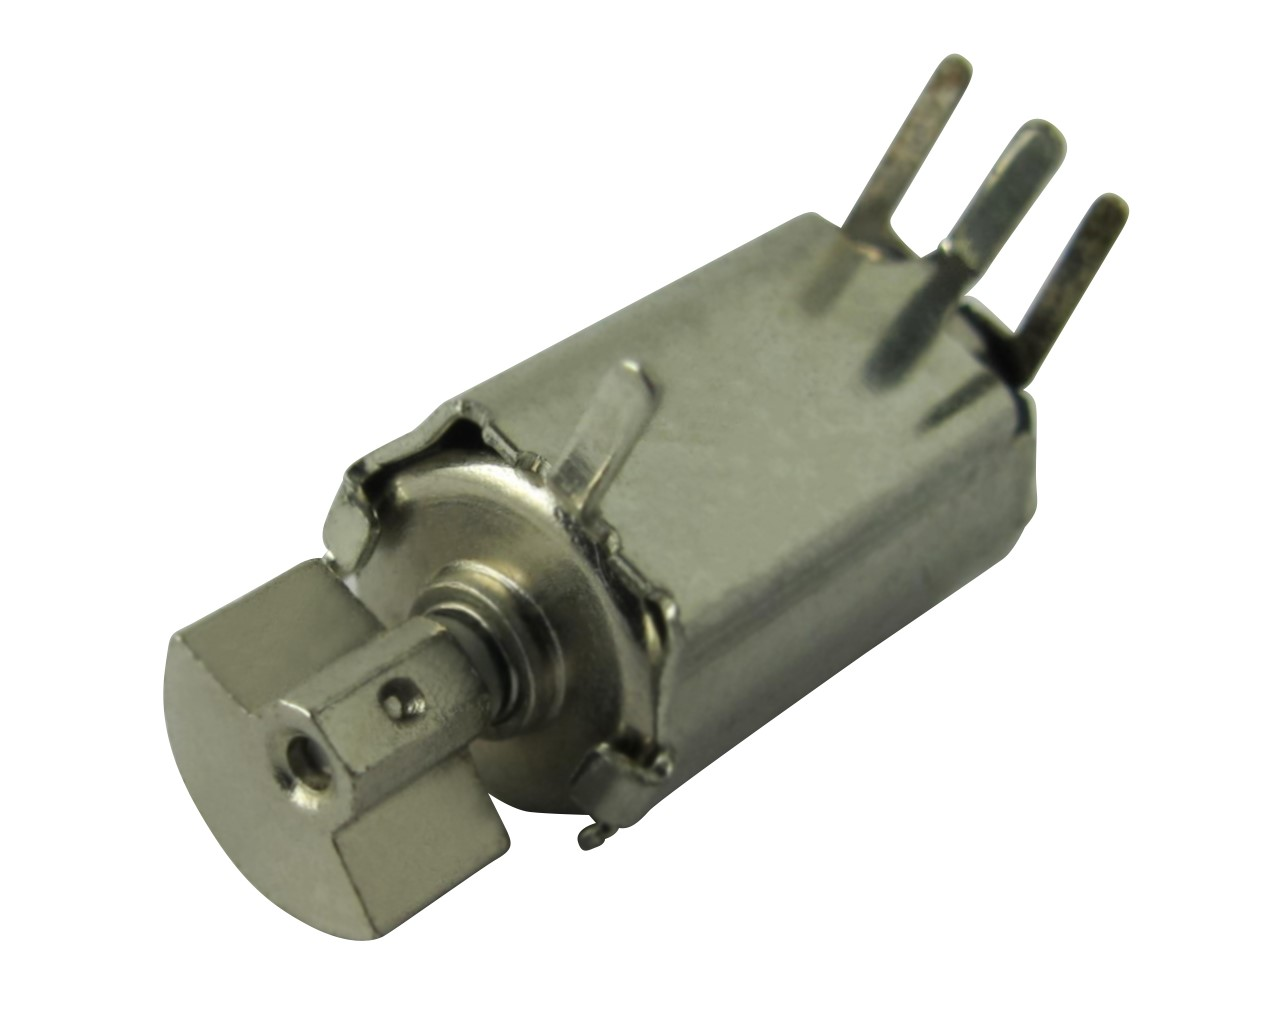 Z6SCAB0061141 Cylindrical Vibrator Motor